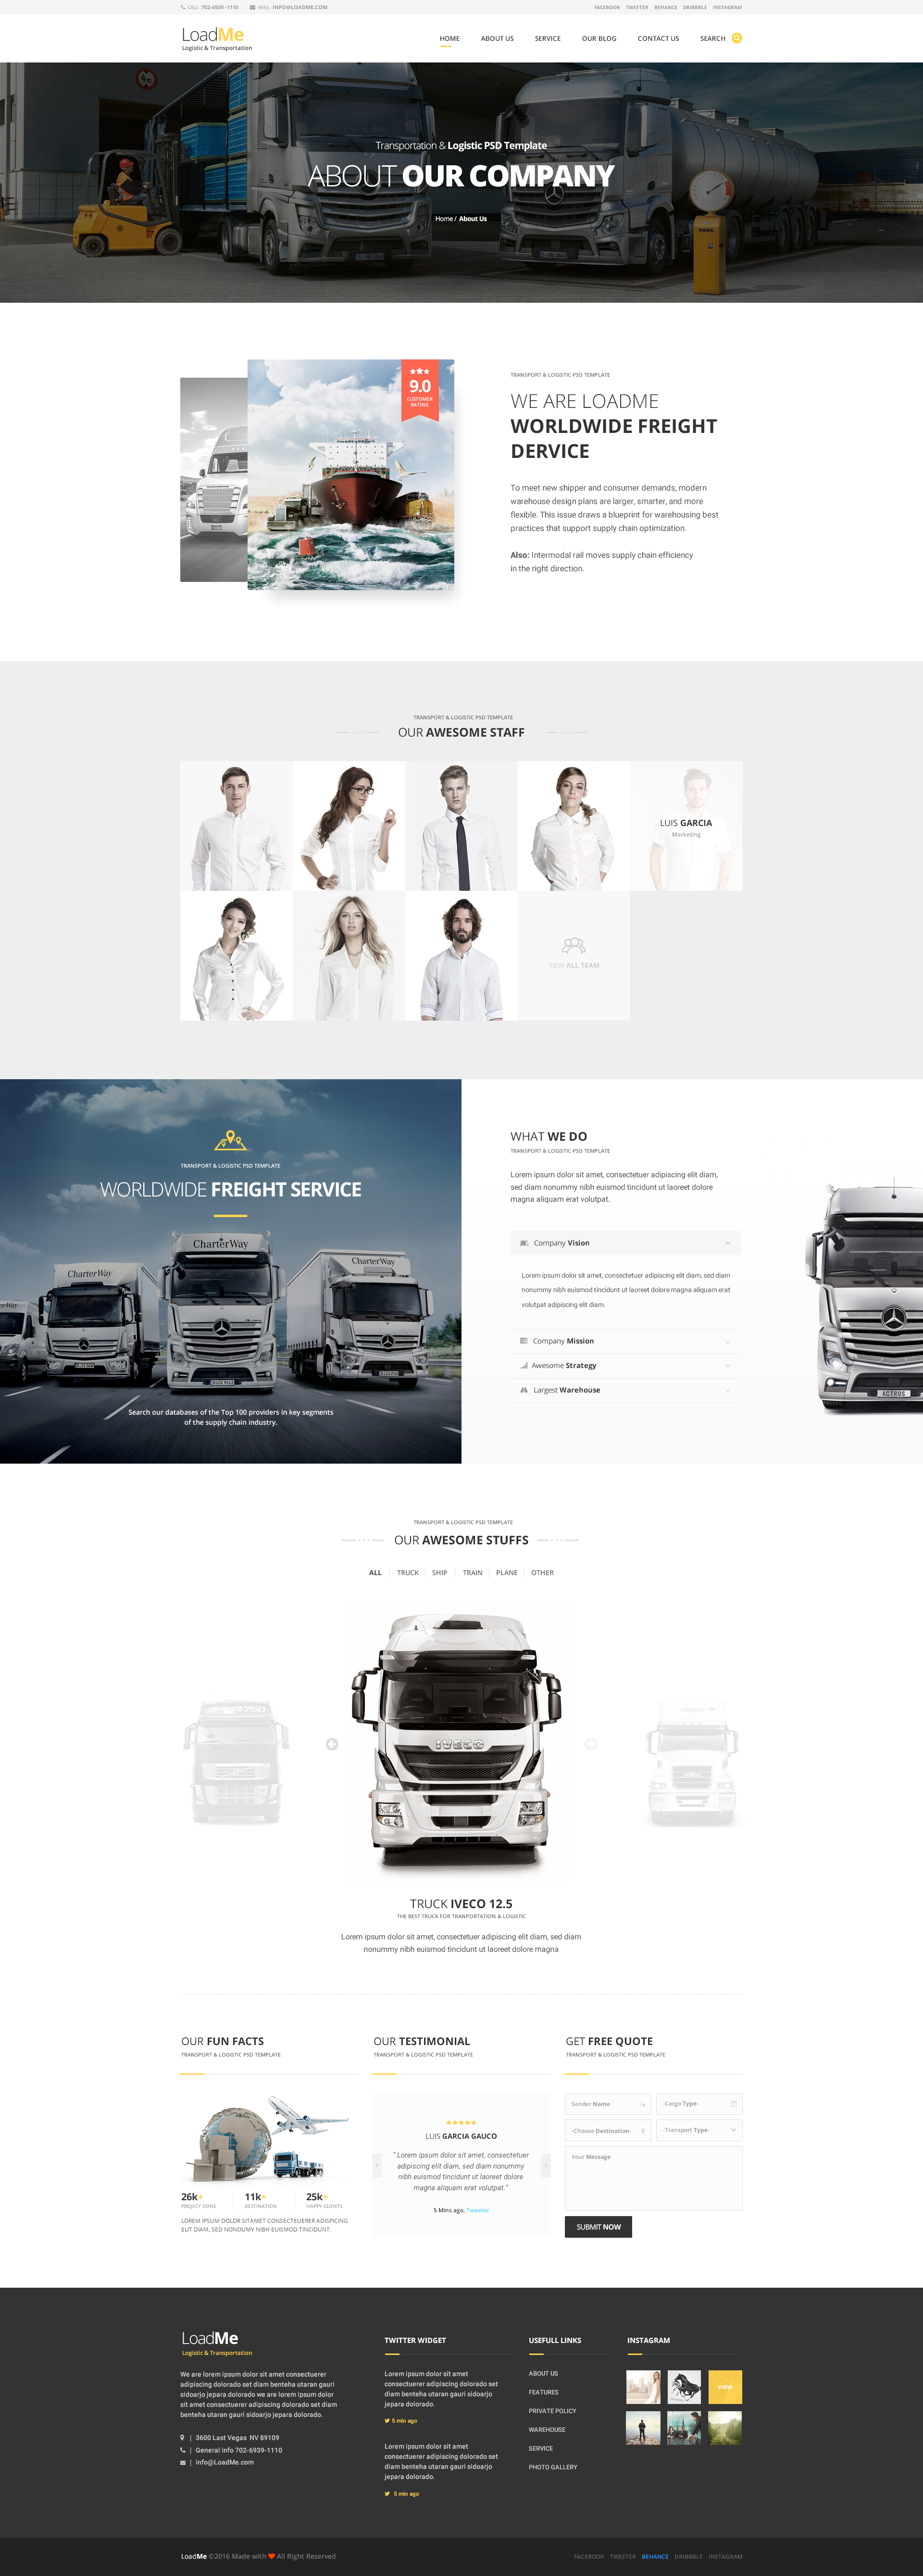 Loadme logistic transportation psd template by last40 themeforest loadme logistic transportation psd template malvernweather Image collections